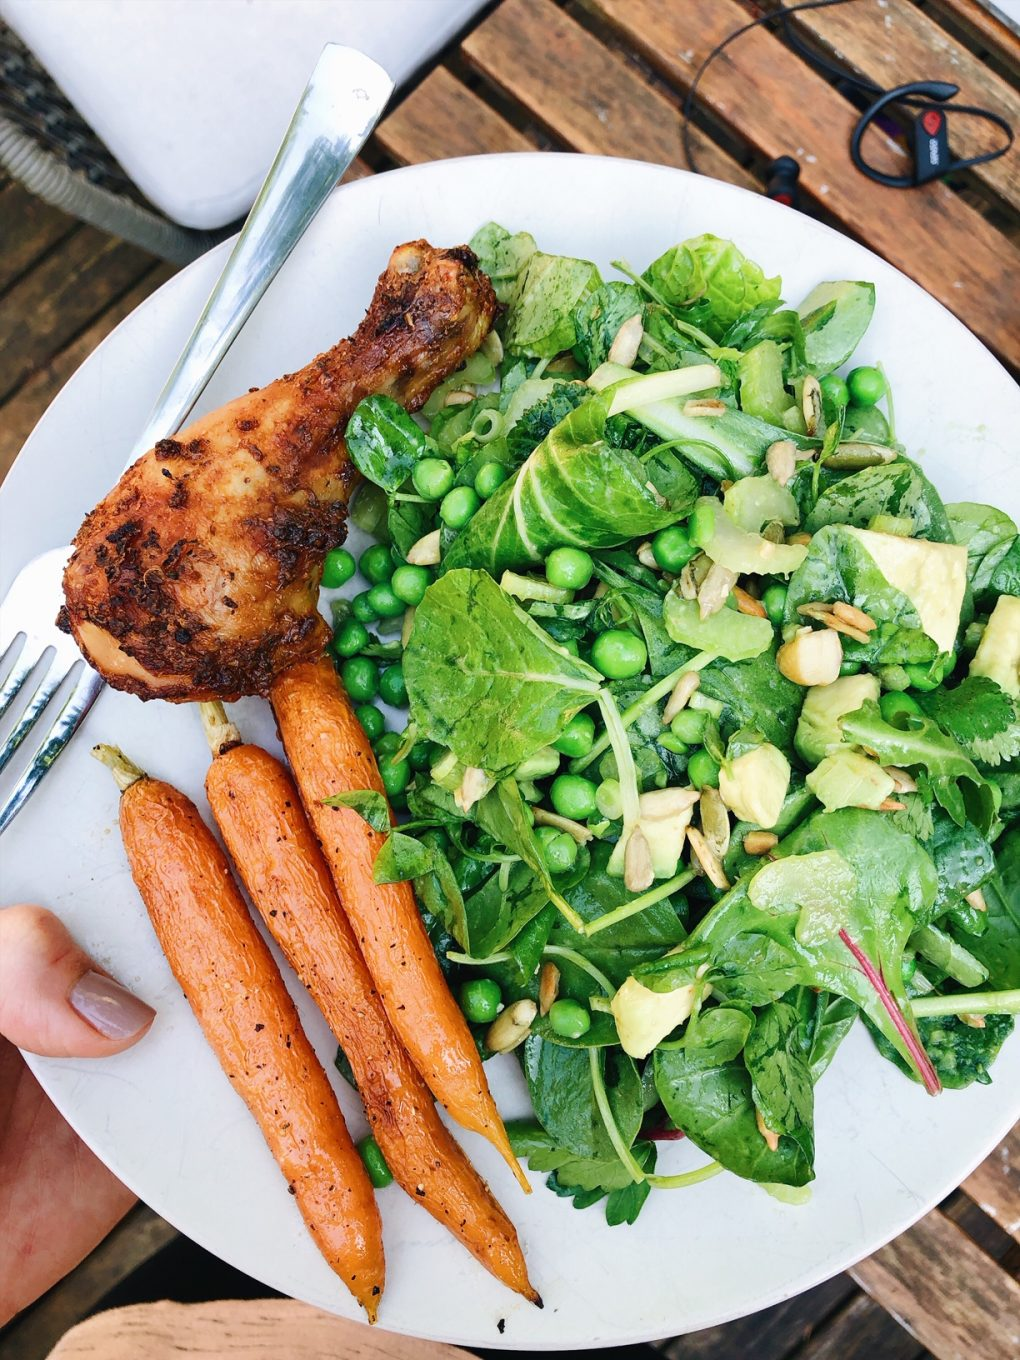 Holding a white plate outside with a chicken drumstick, roasted carrots, and a big green salad.